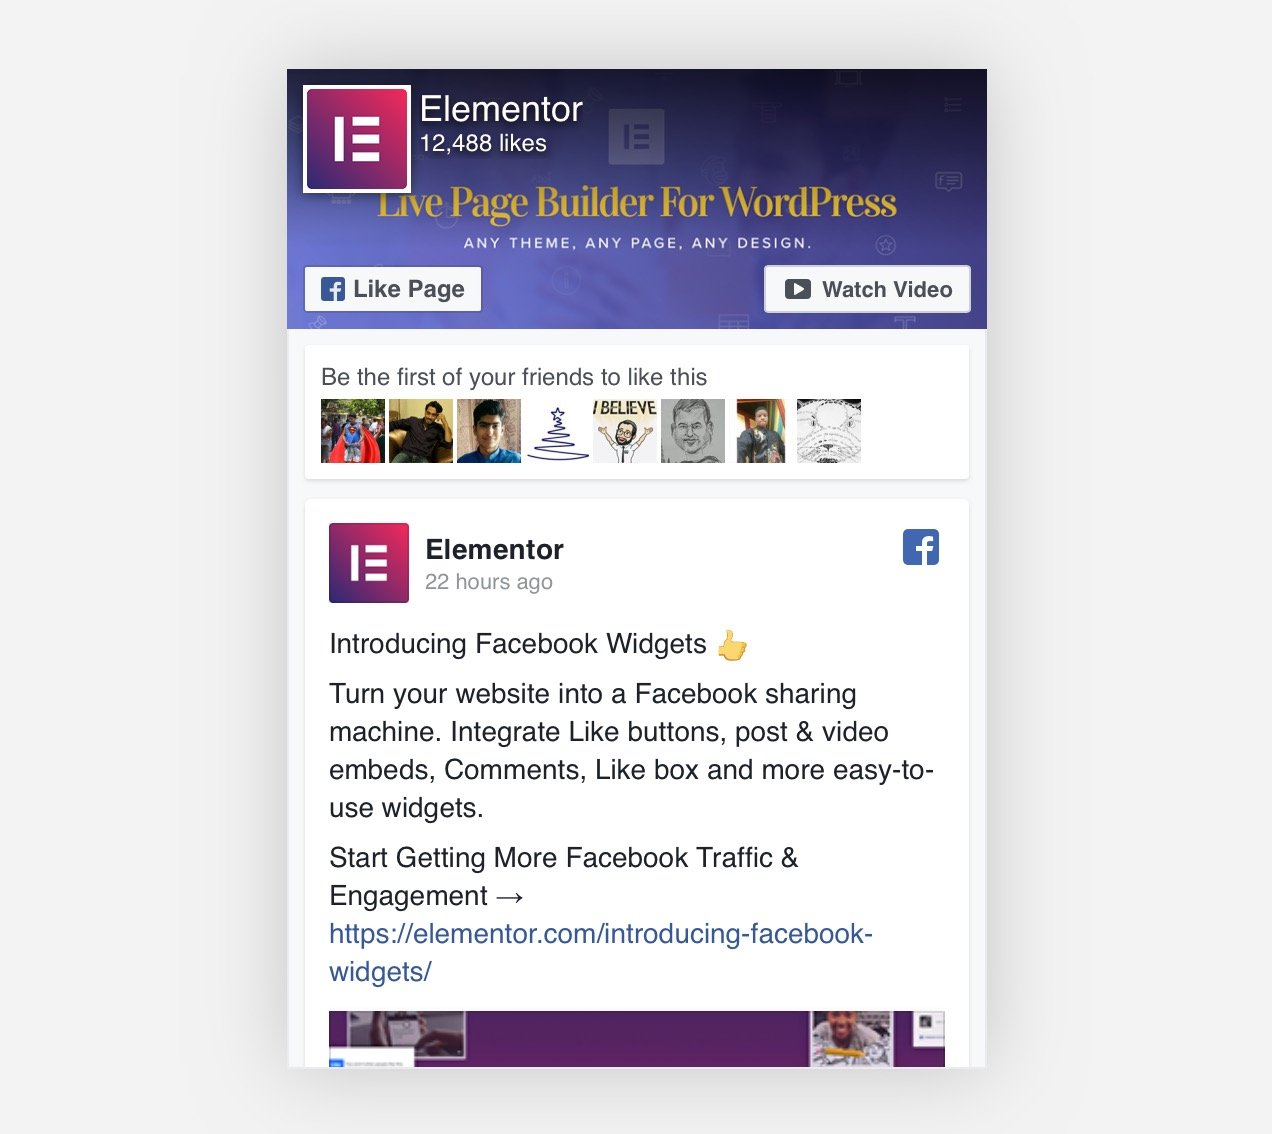 Elementor Pro: New Facebook Widgets For Getting More Social